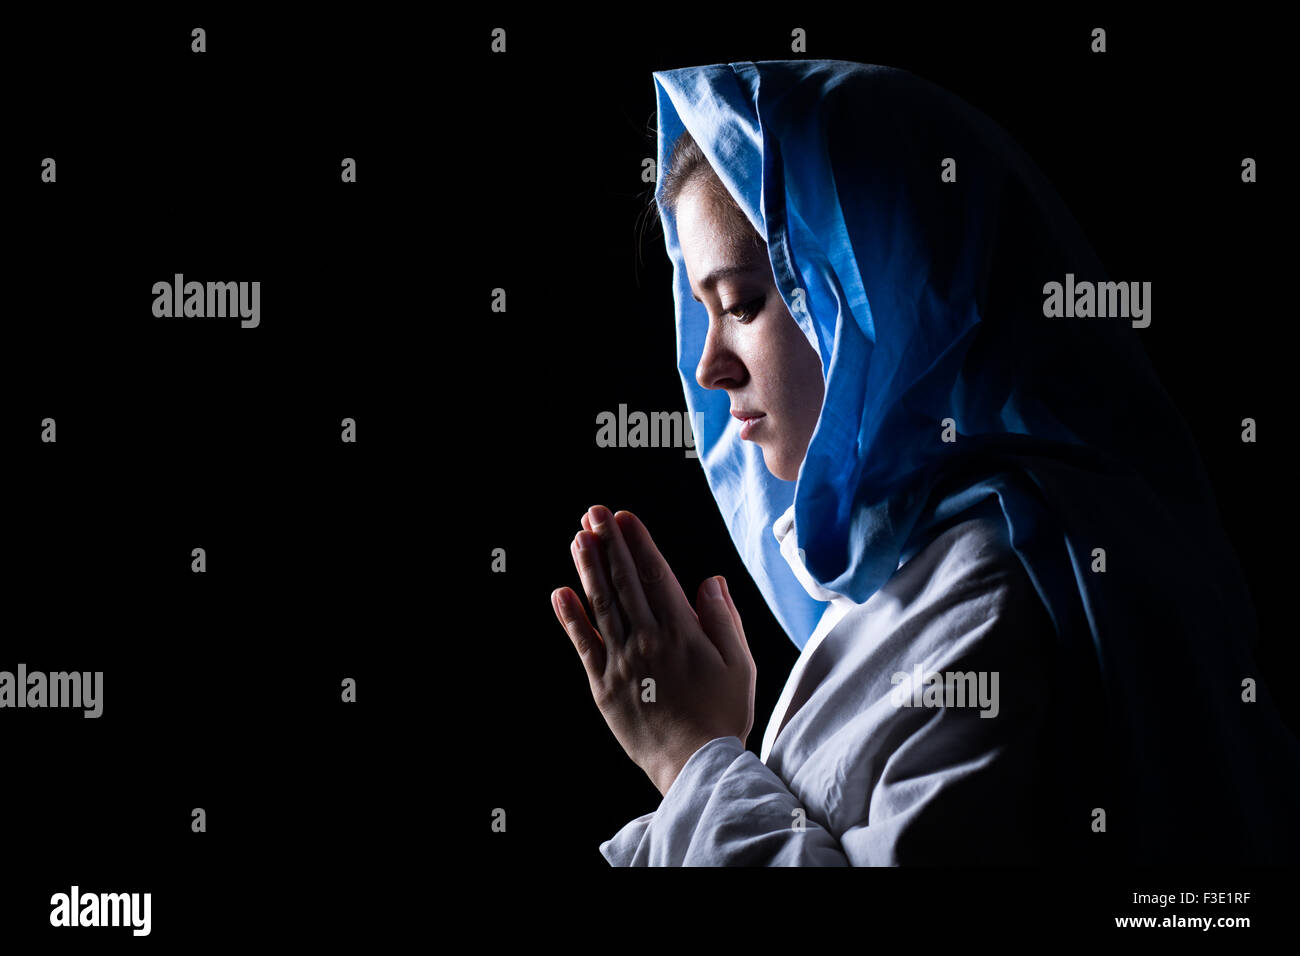 Virgin Mary with Blue Veil Praying on Black Background - Stock Image